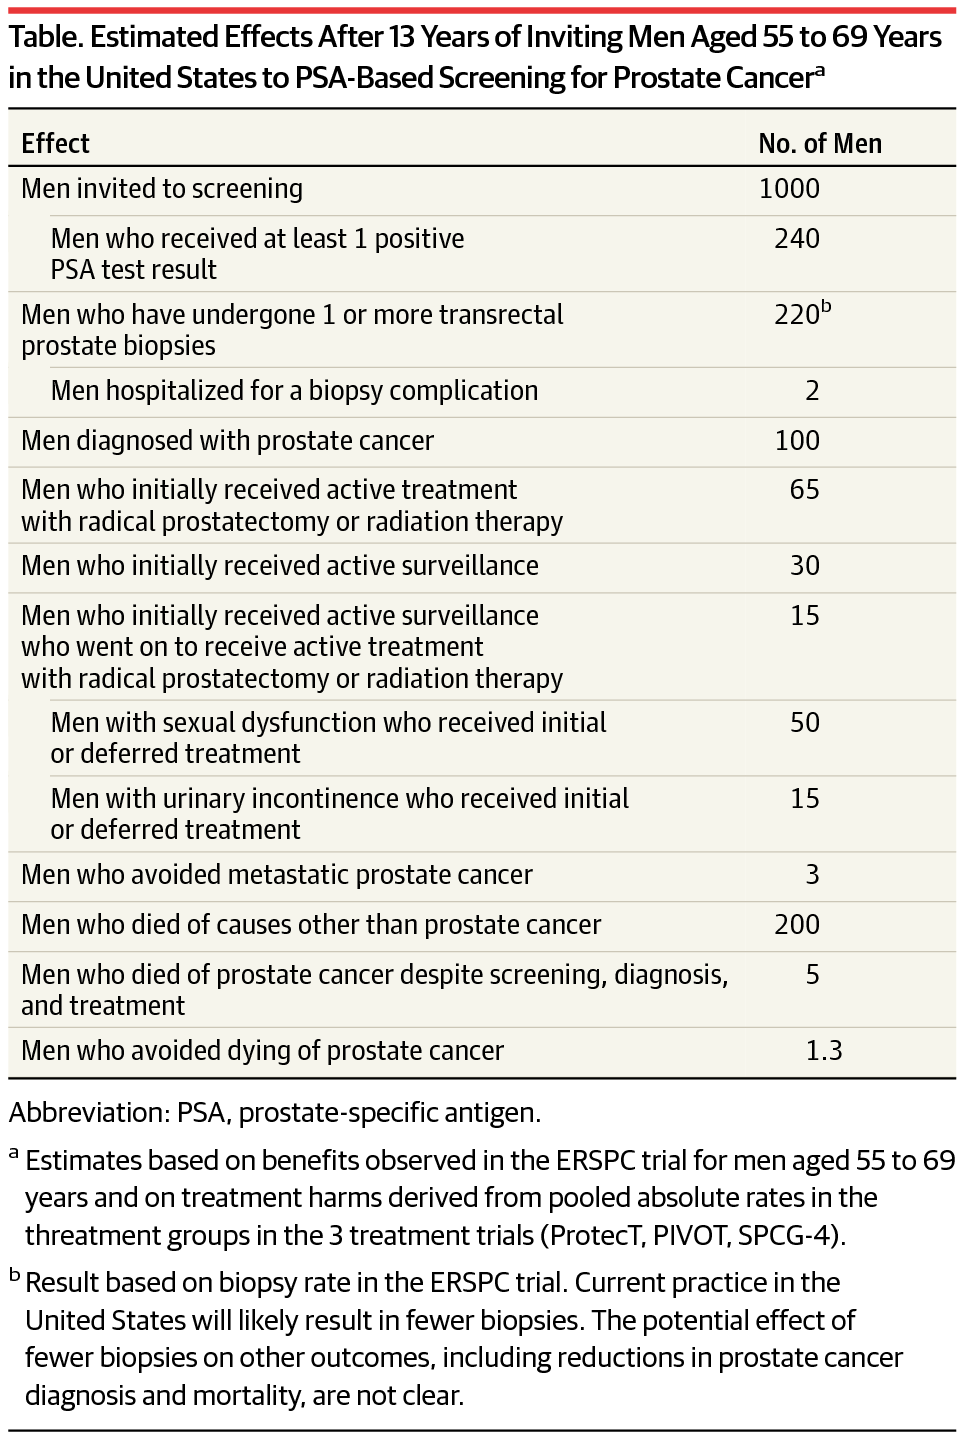 Estimated Effects After 13 Years Of Inviting Men Aged 55 To 69 In The United